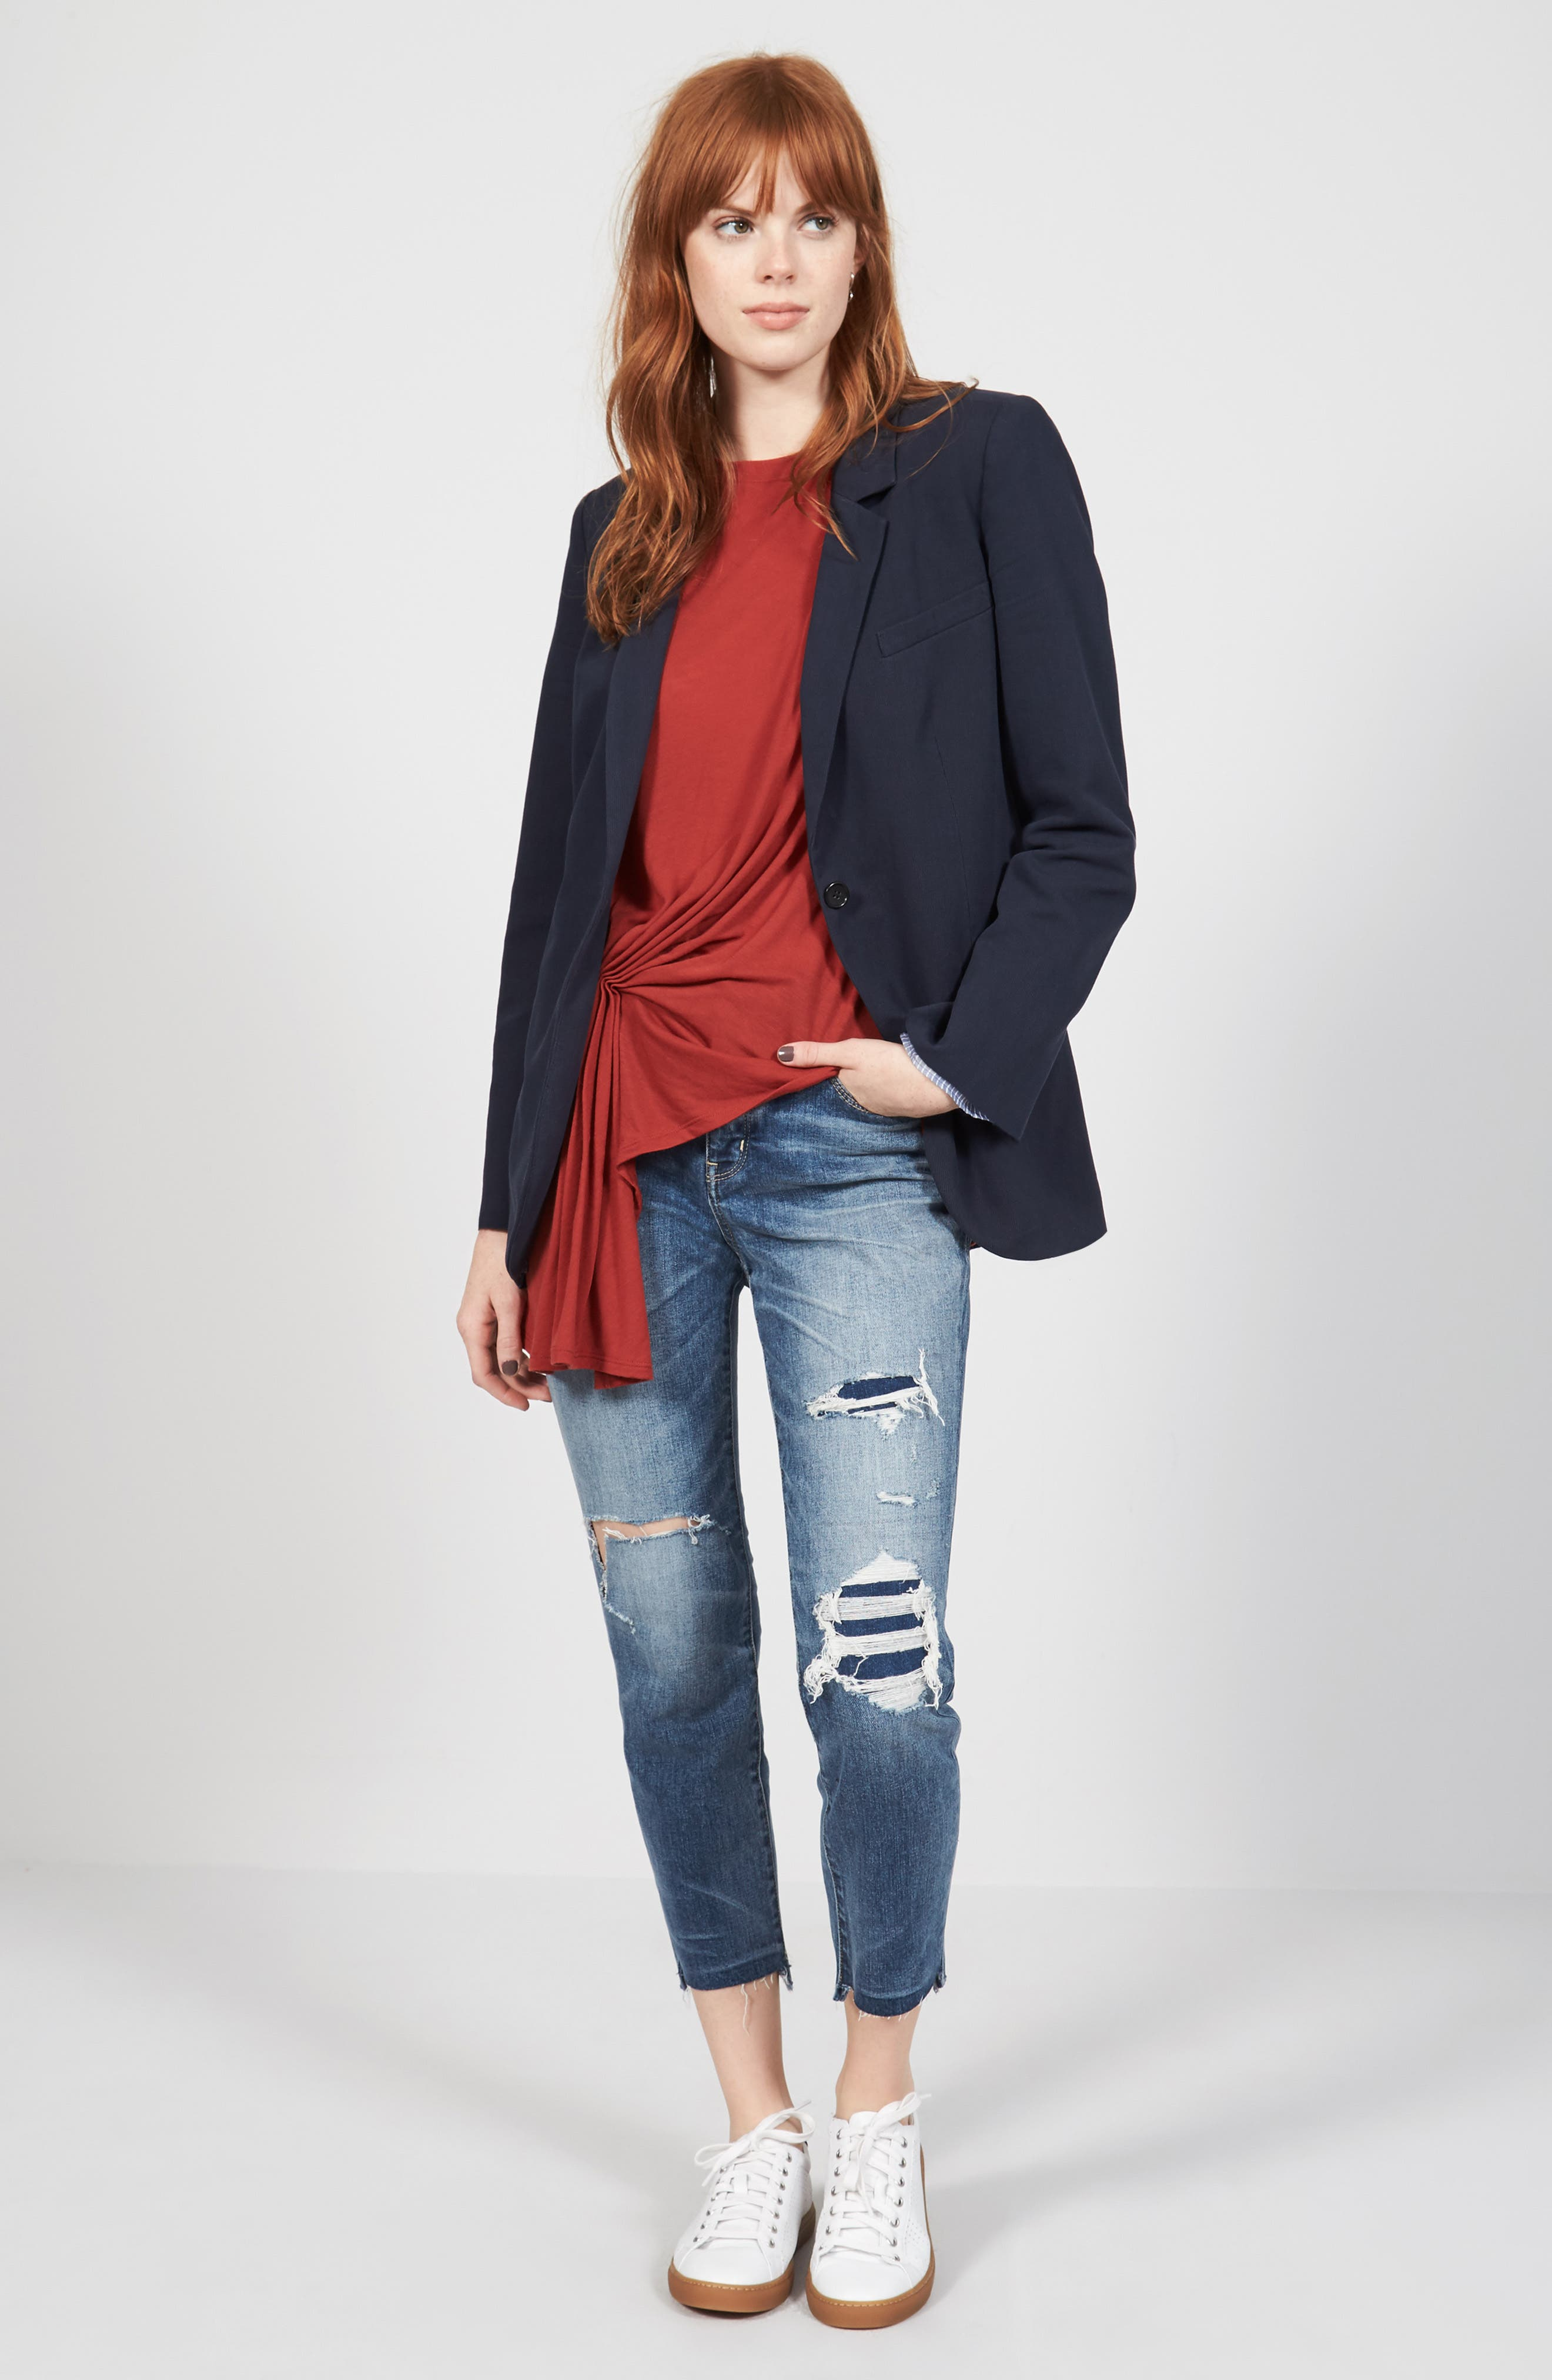 Treasure & Bond Blazer, Tee & Jeans Outfit with Accessories